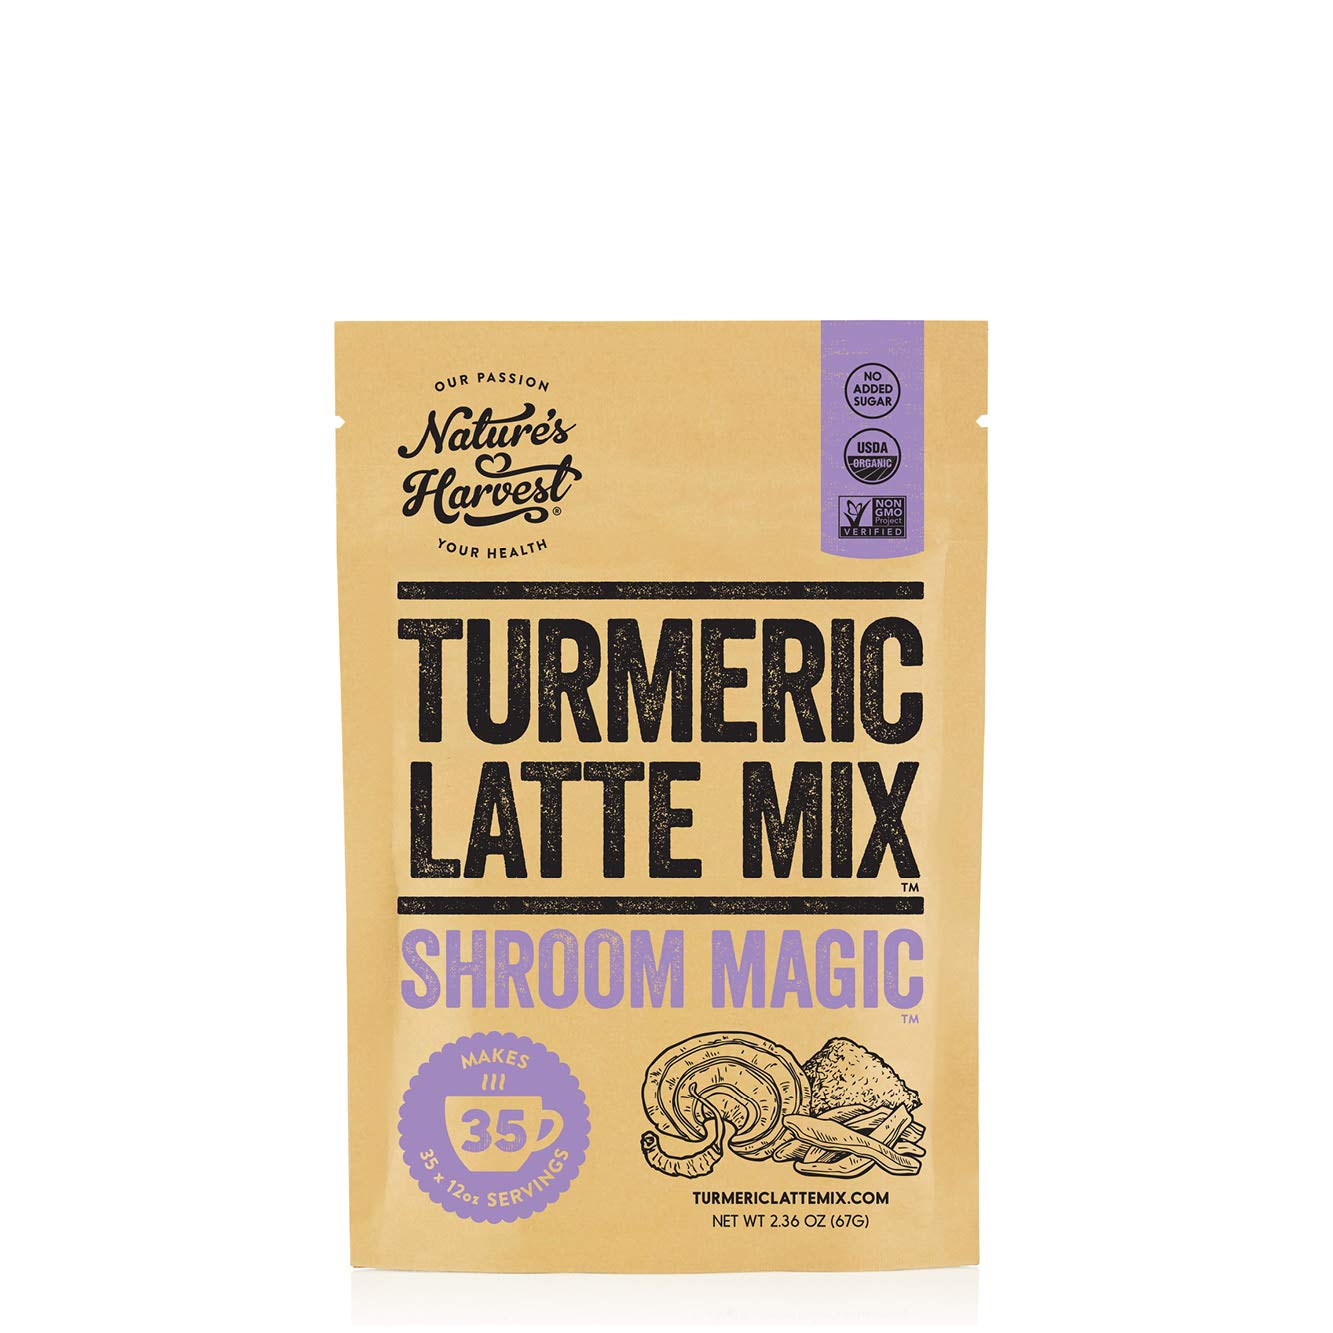 Nature's Harvest Mushroom Powder Turmeric Latte Mix | Shroom Magic 5 Powerful Mushrooms Blend with Reishi, Chaga, Cordyceps, Lions Mane and Turkey Tail for Hot and Iced Drinks | 35 Servings by Nature's Harvest